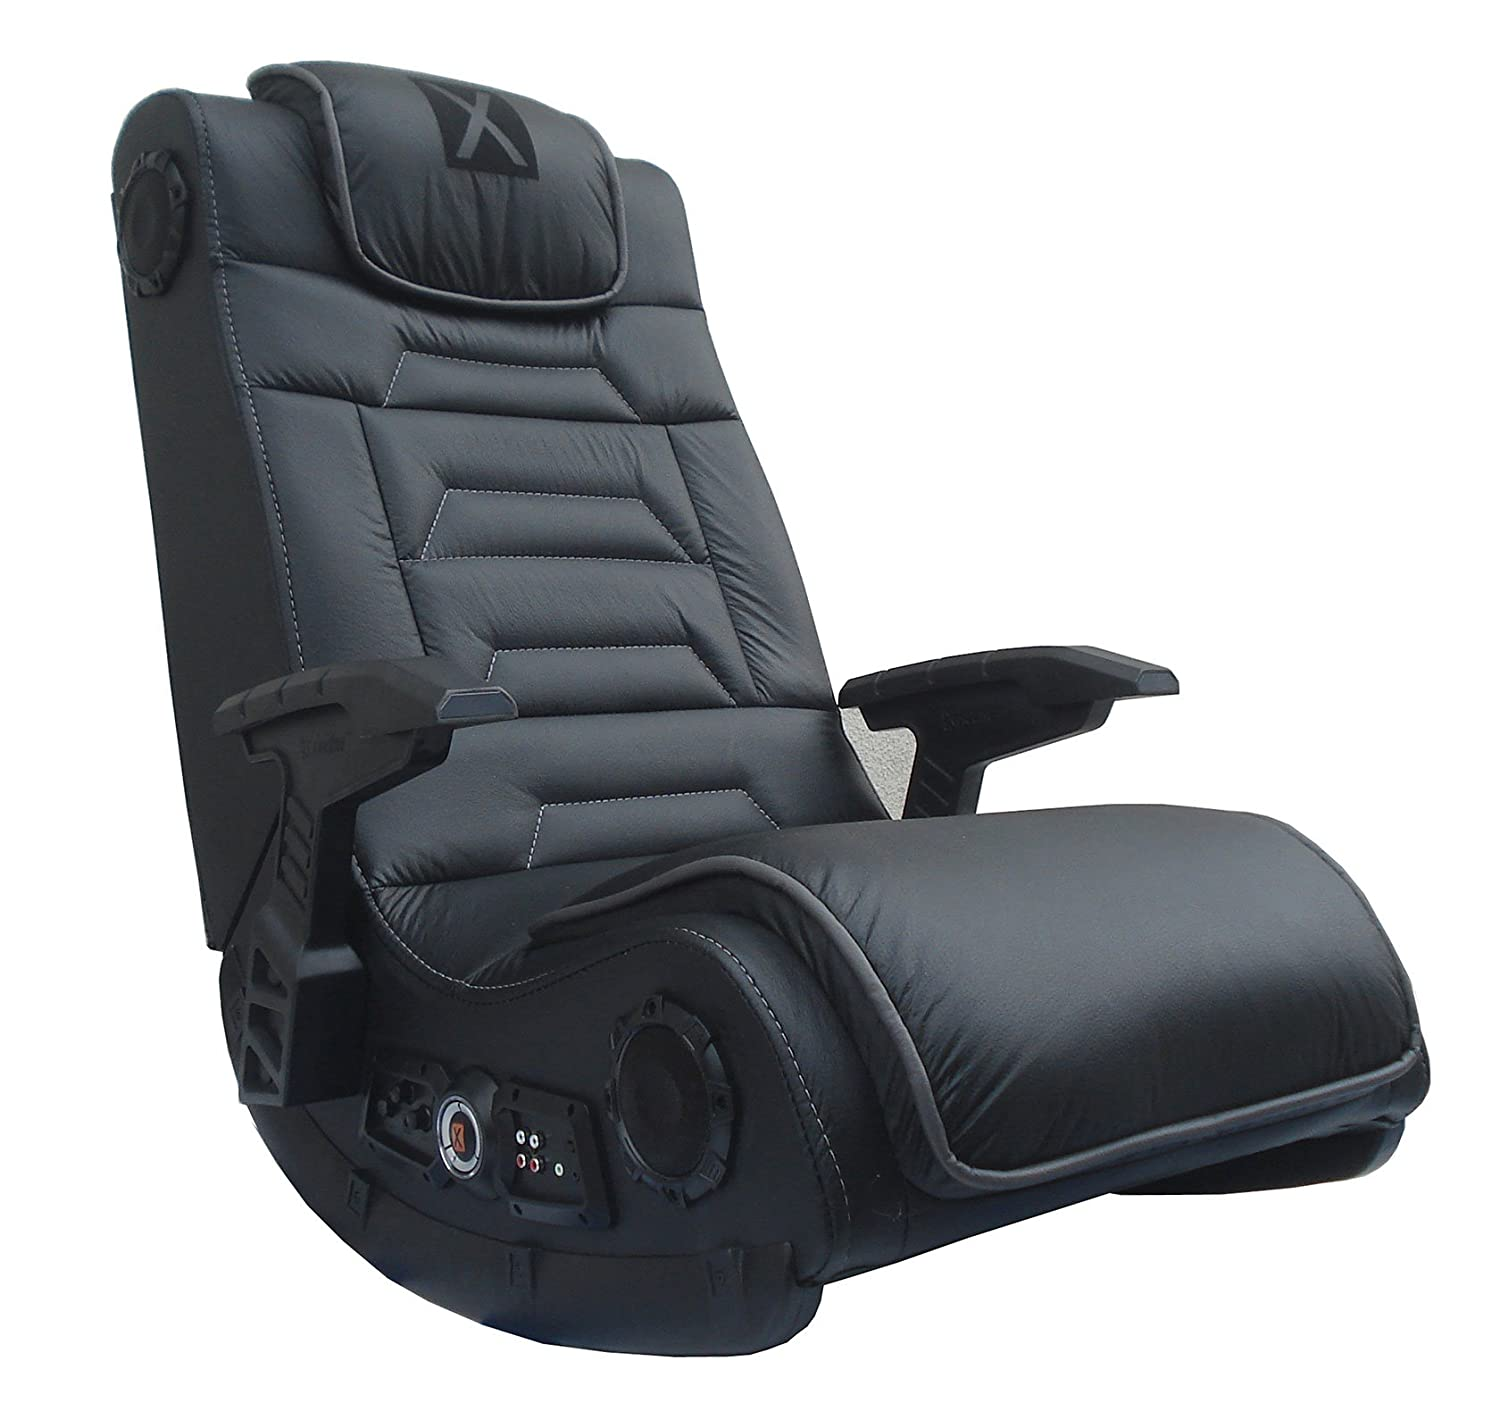 X Rocker 51259 Pro H3 4.1 Audio Gaming Chair, Wireless Review